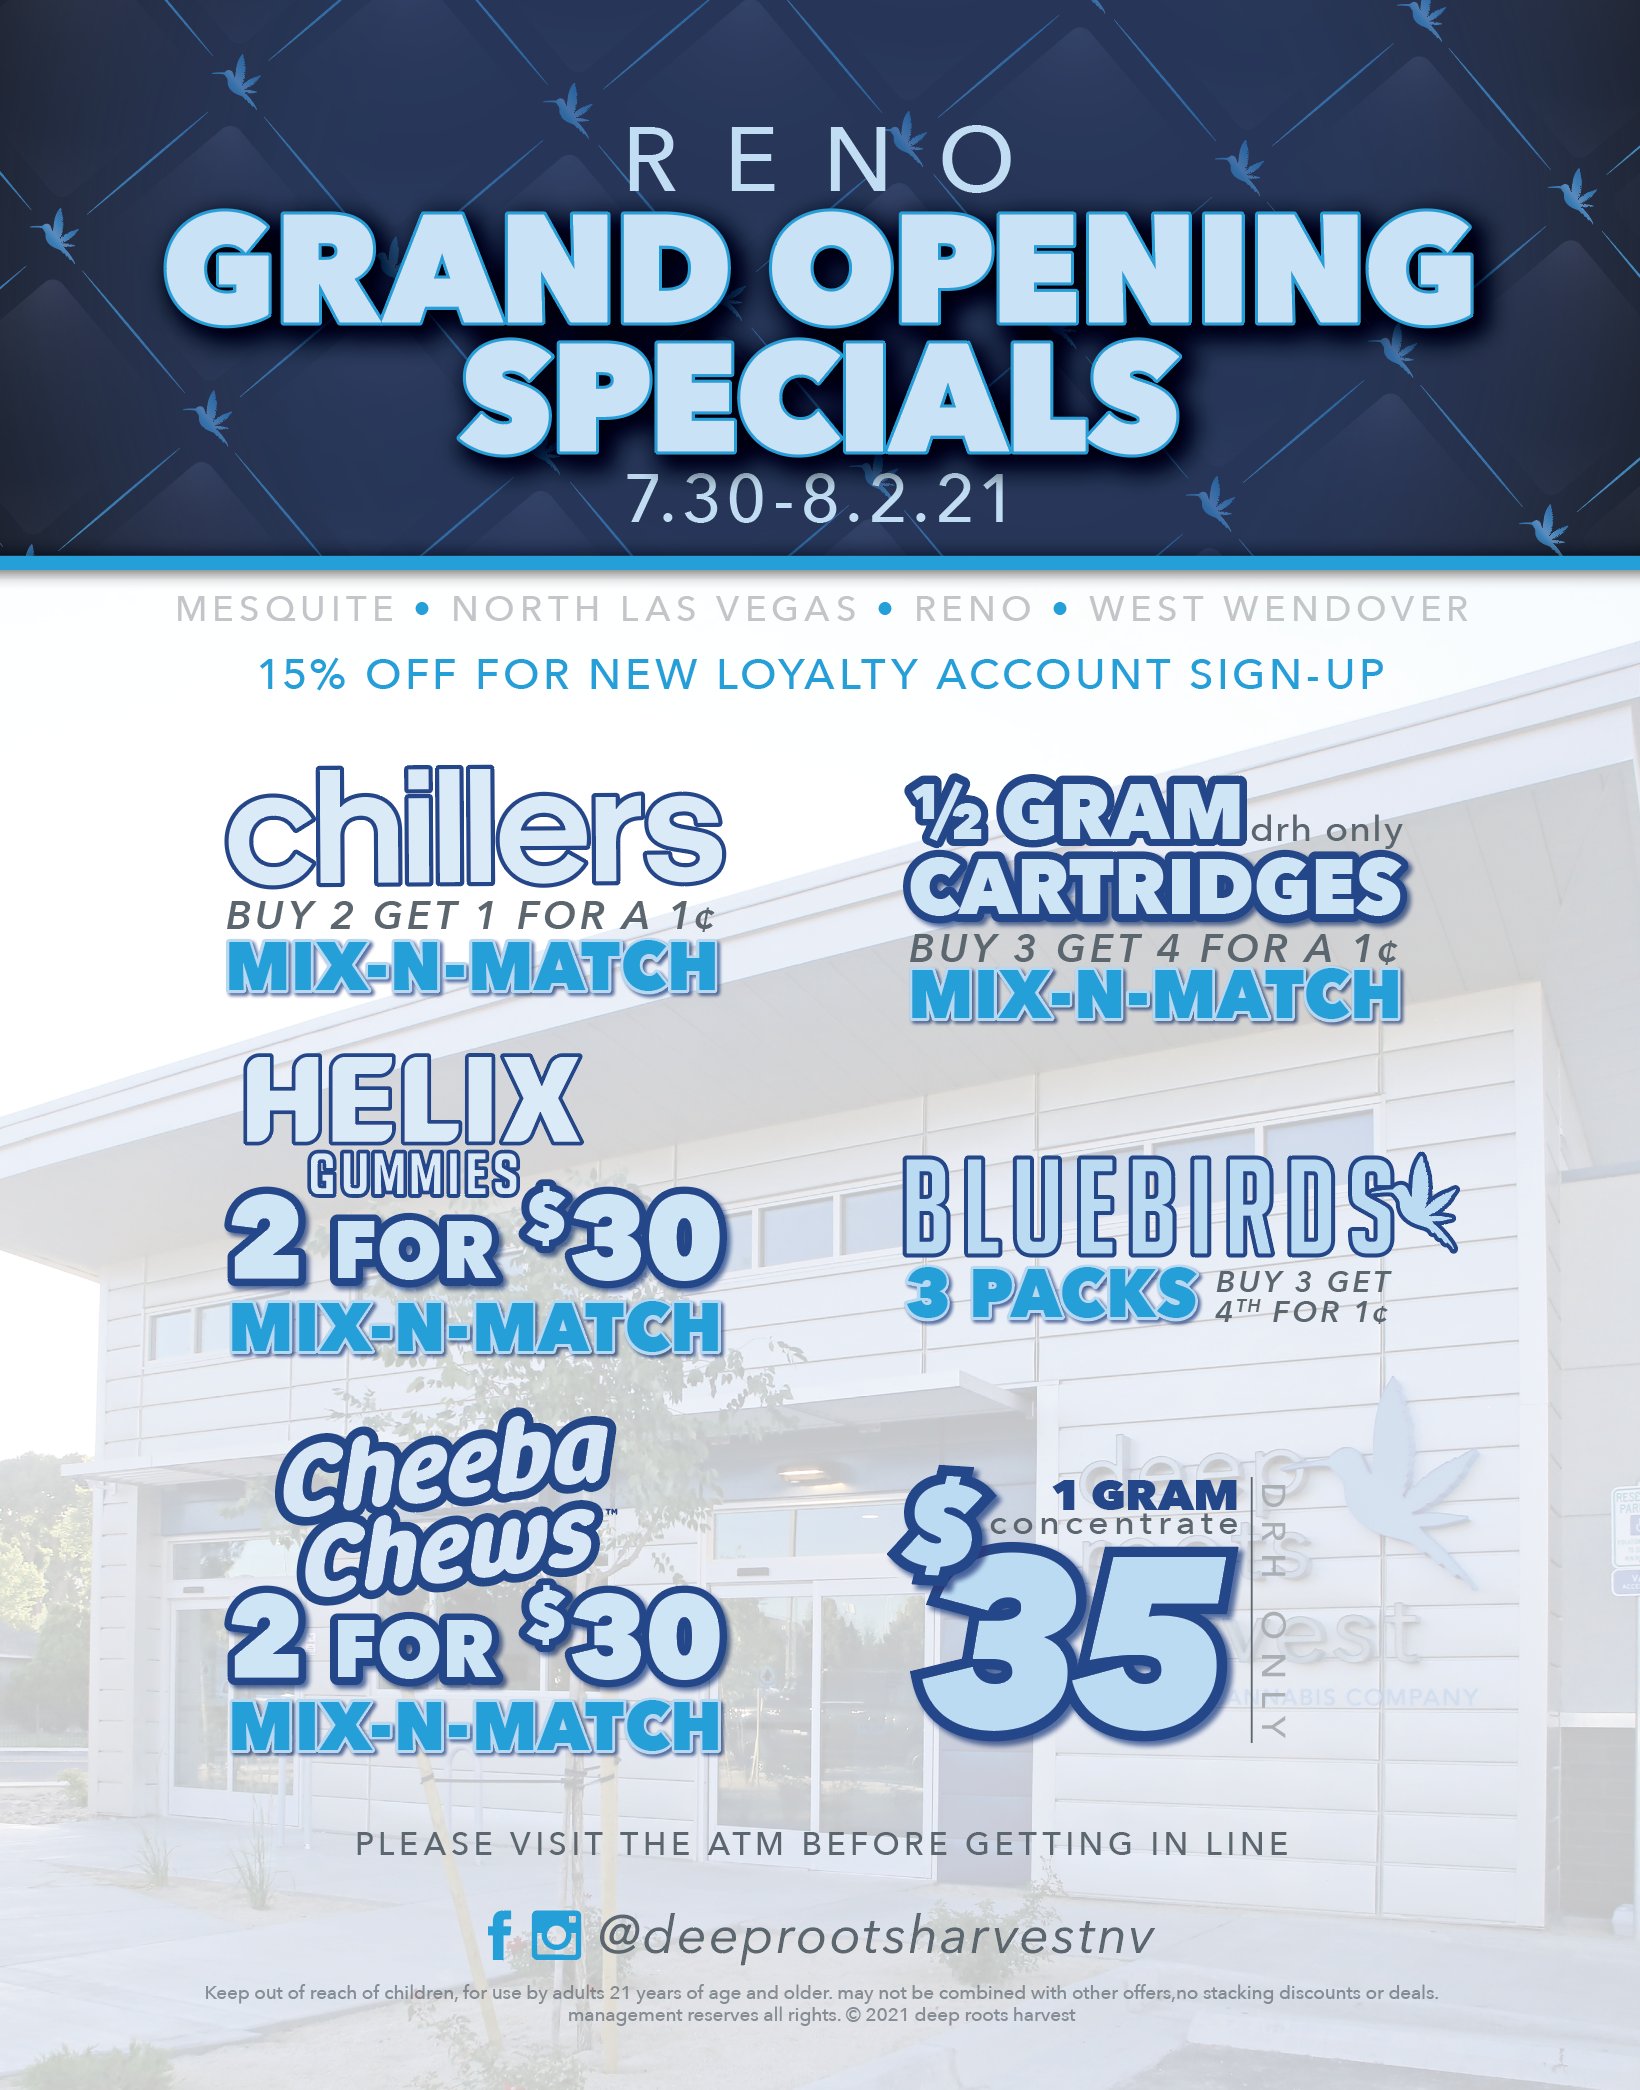 deep roots harvest reno grand opening. 7.30-8.02.21. availble at all deep roots harvest locations. Get 15% off if you join loyalty program. buy 2 get 1 for a penny chillers. half gram drh carts buy 3 get the 4th for a penny. Helix gummies 2 for $30. bluebird 3packs